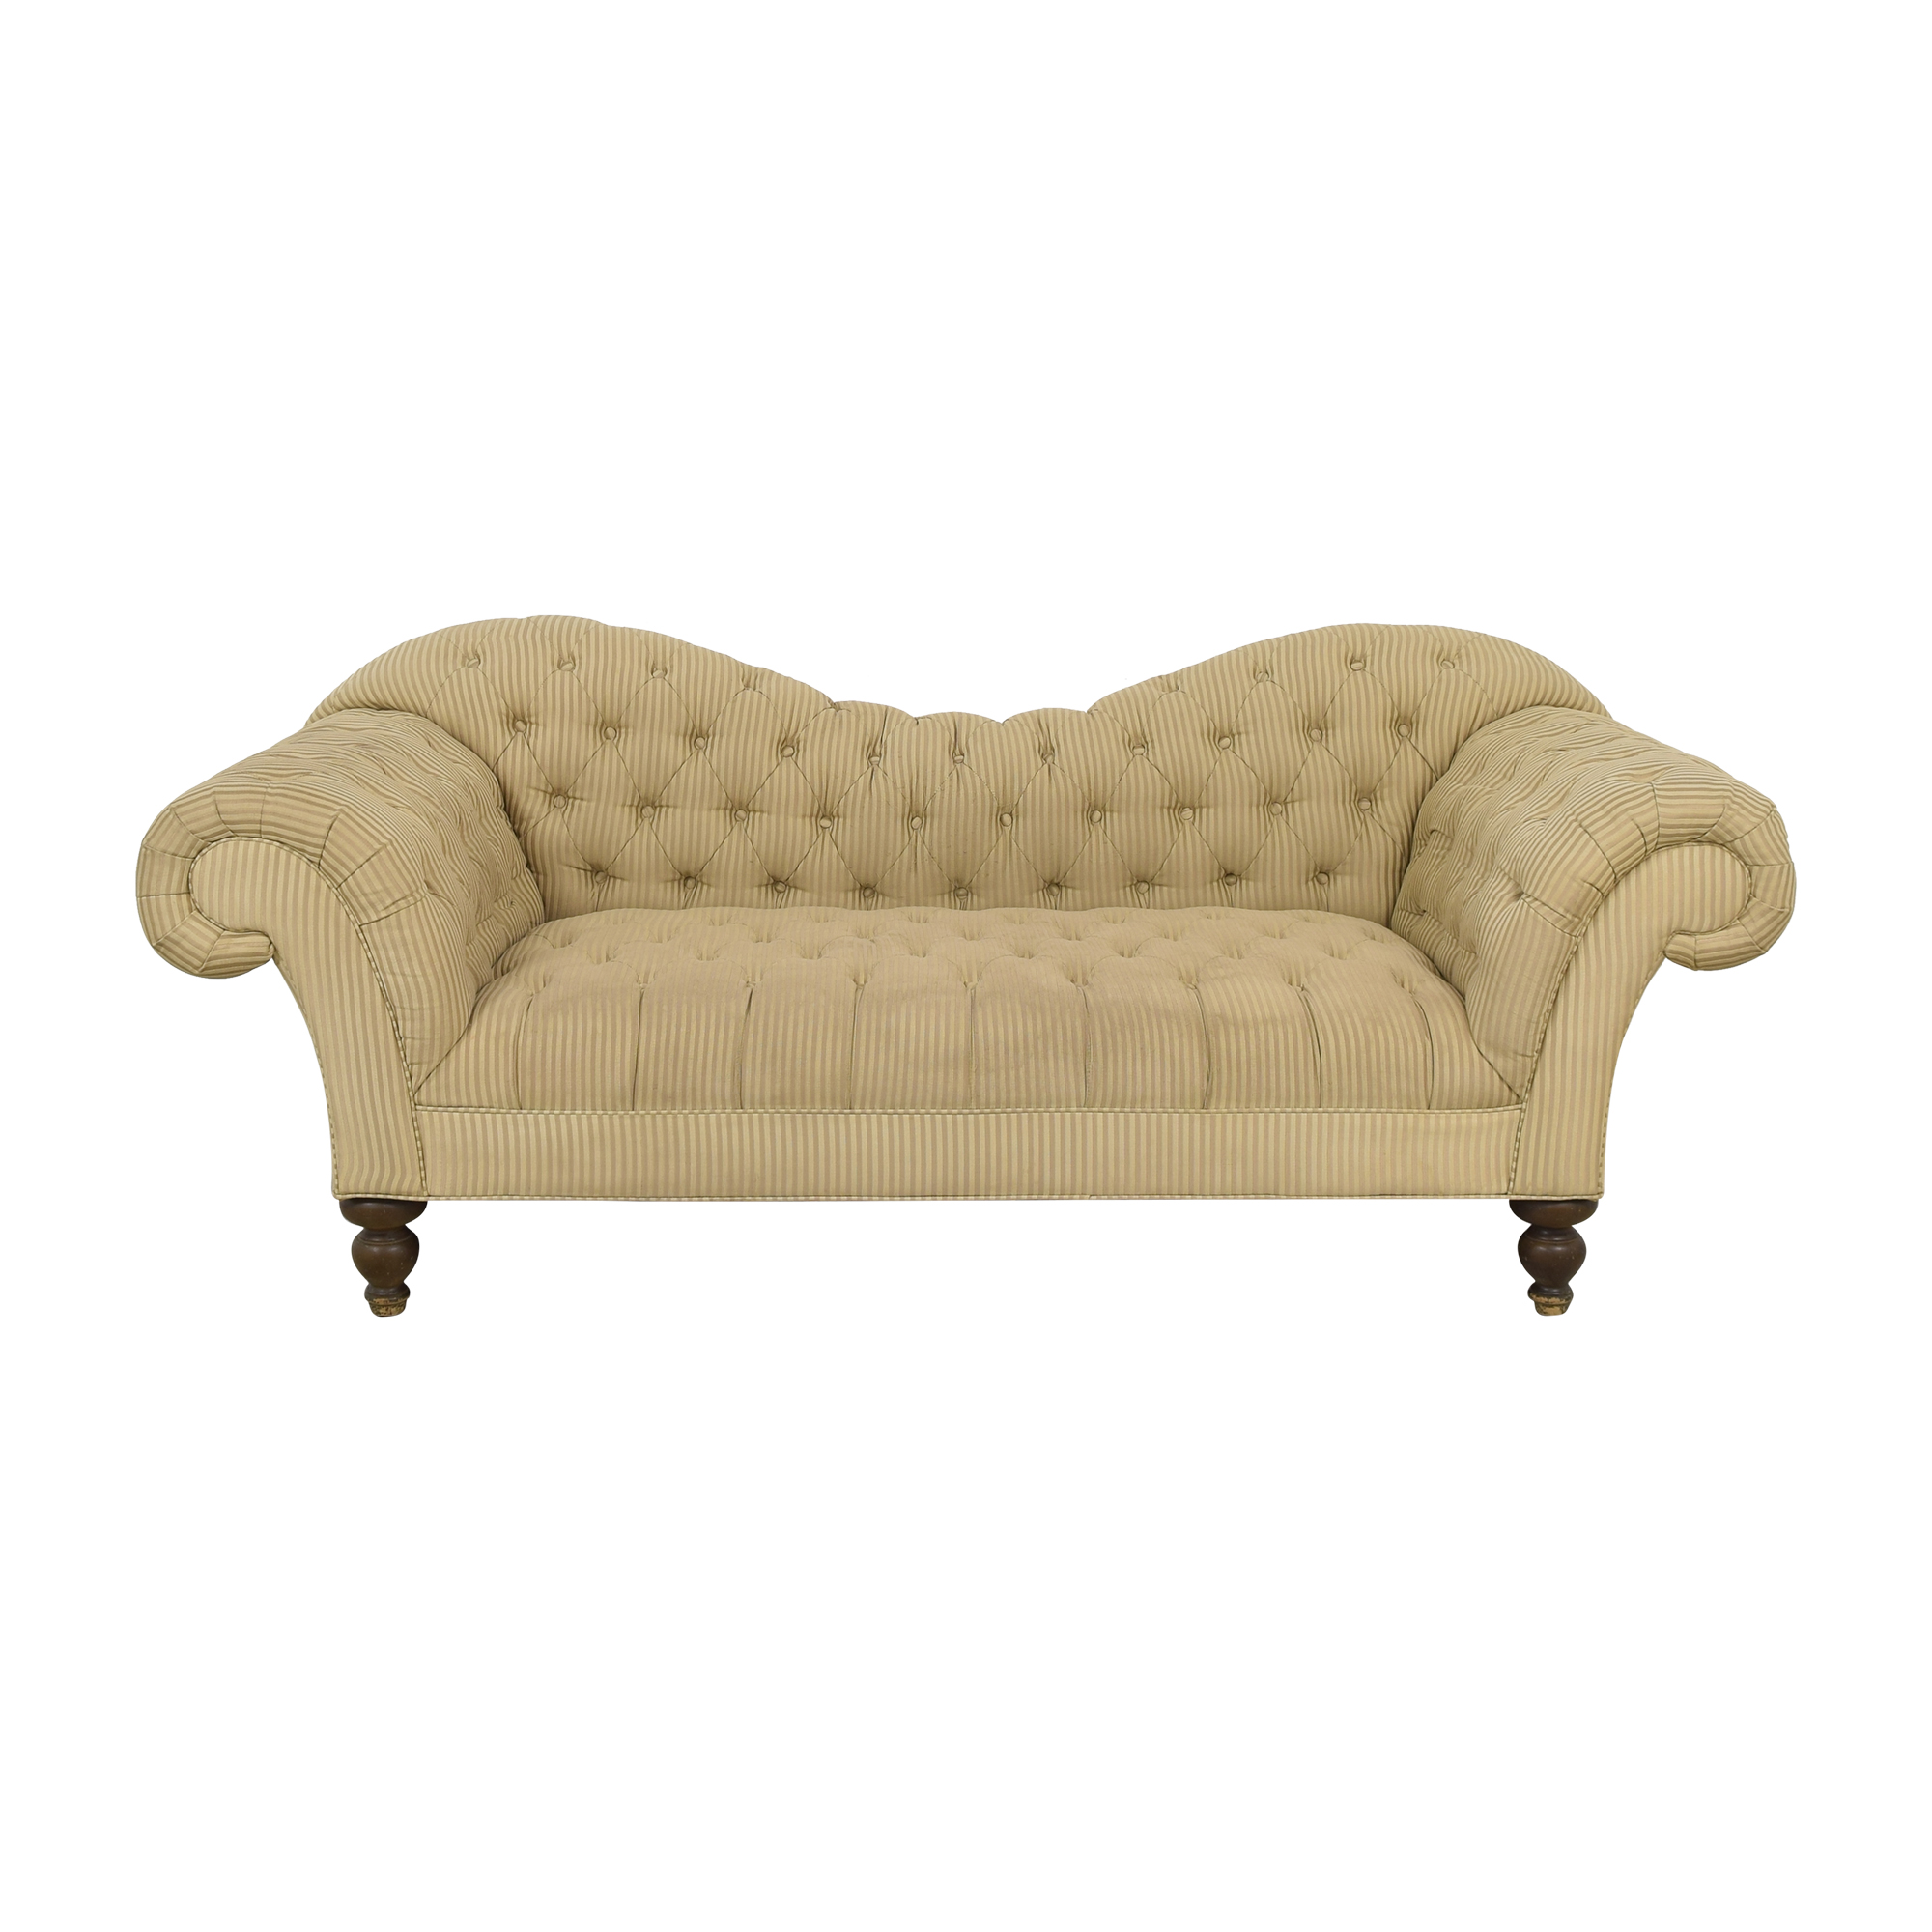 shop Rooms To Go Tufted Roll Arm Chesterfield Sofa Rooms To Go